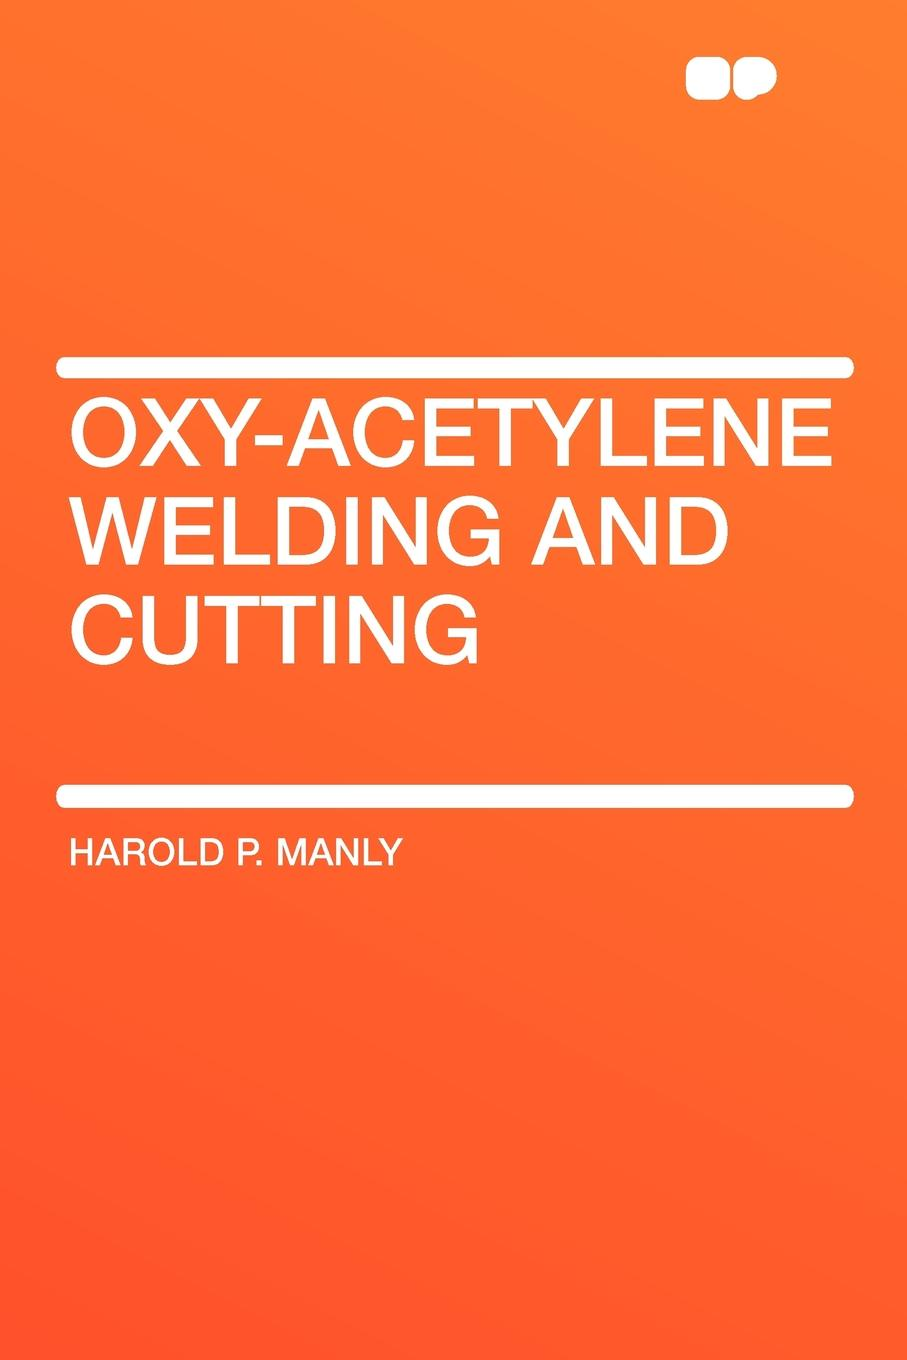 цена на Harold P. Manly Oxy-Acetylene Welding and Cutting